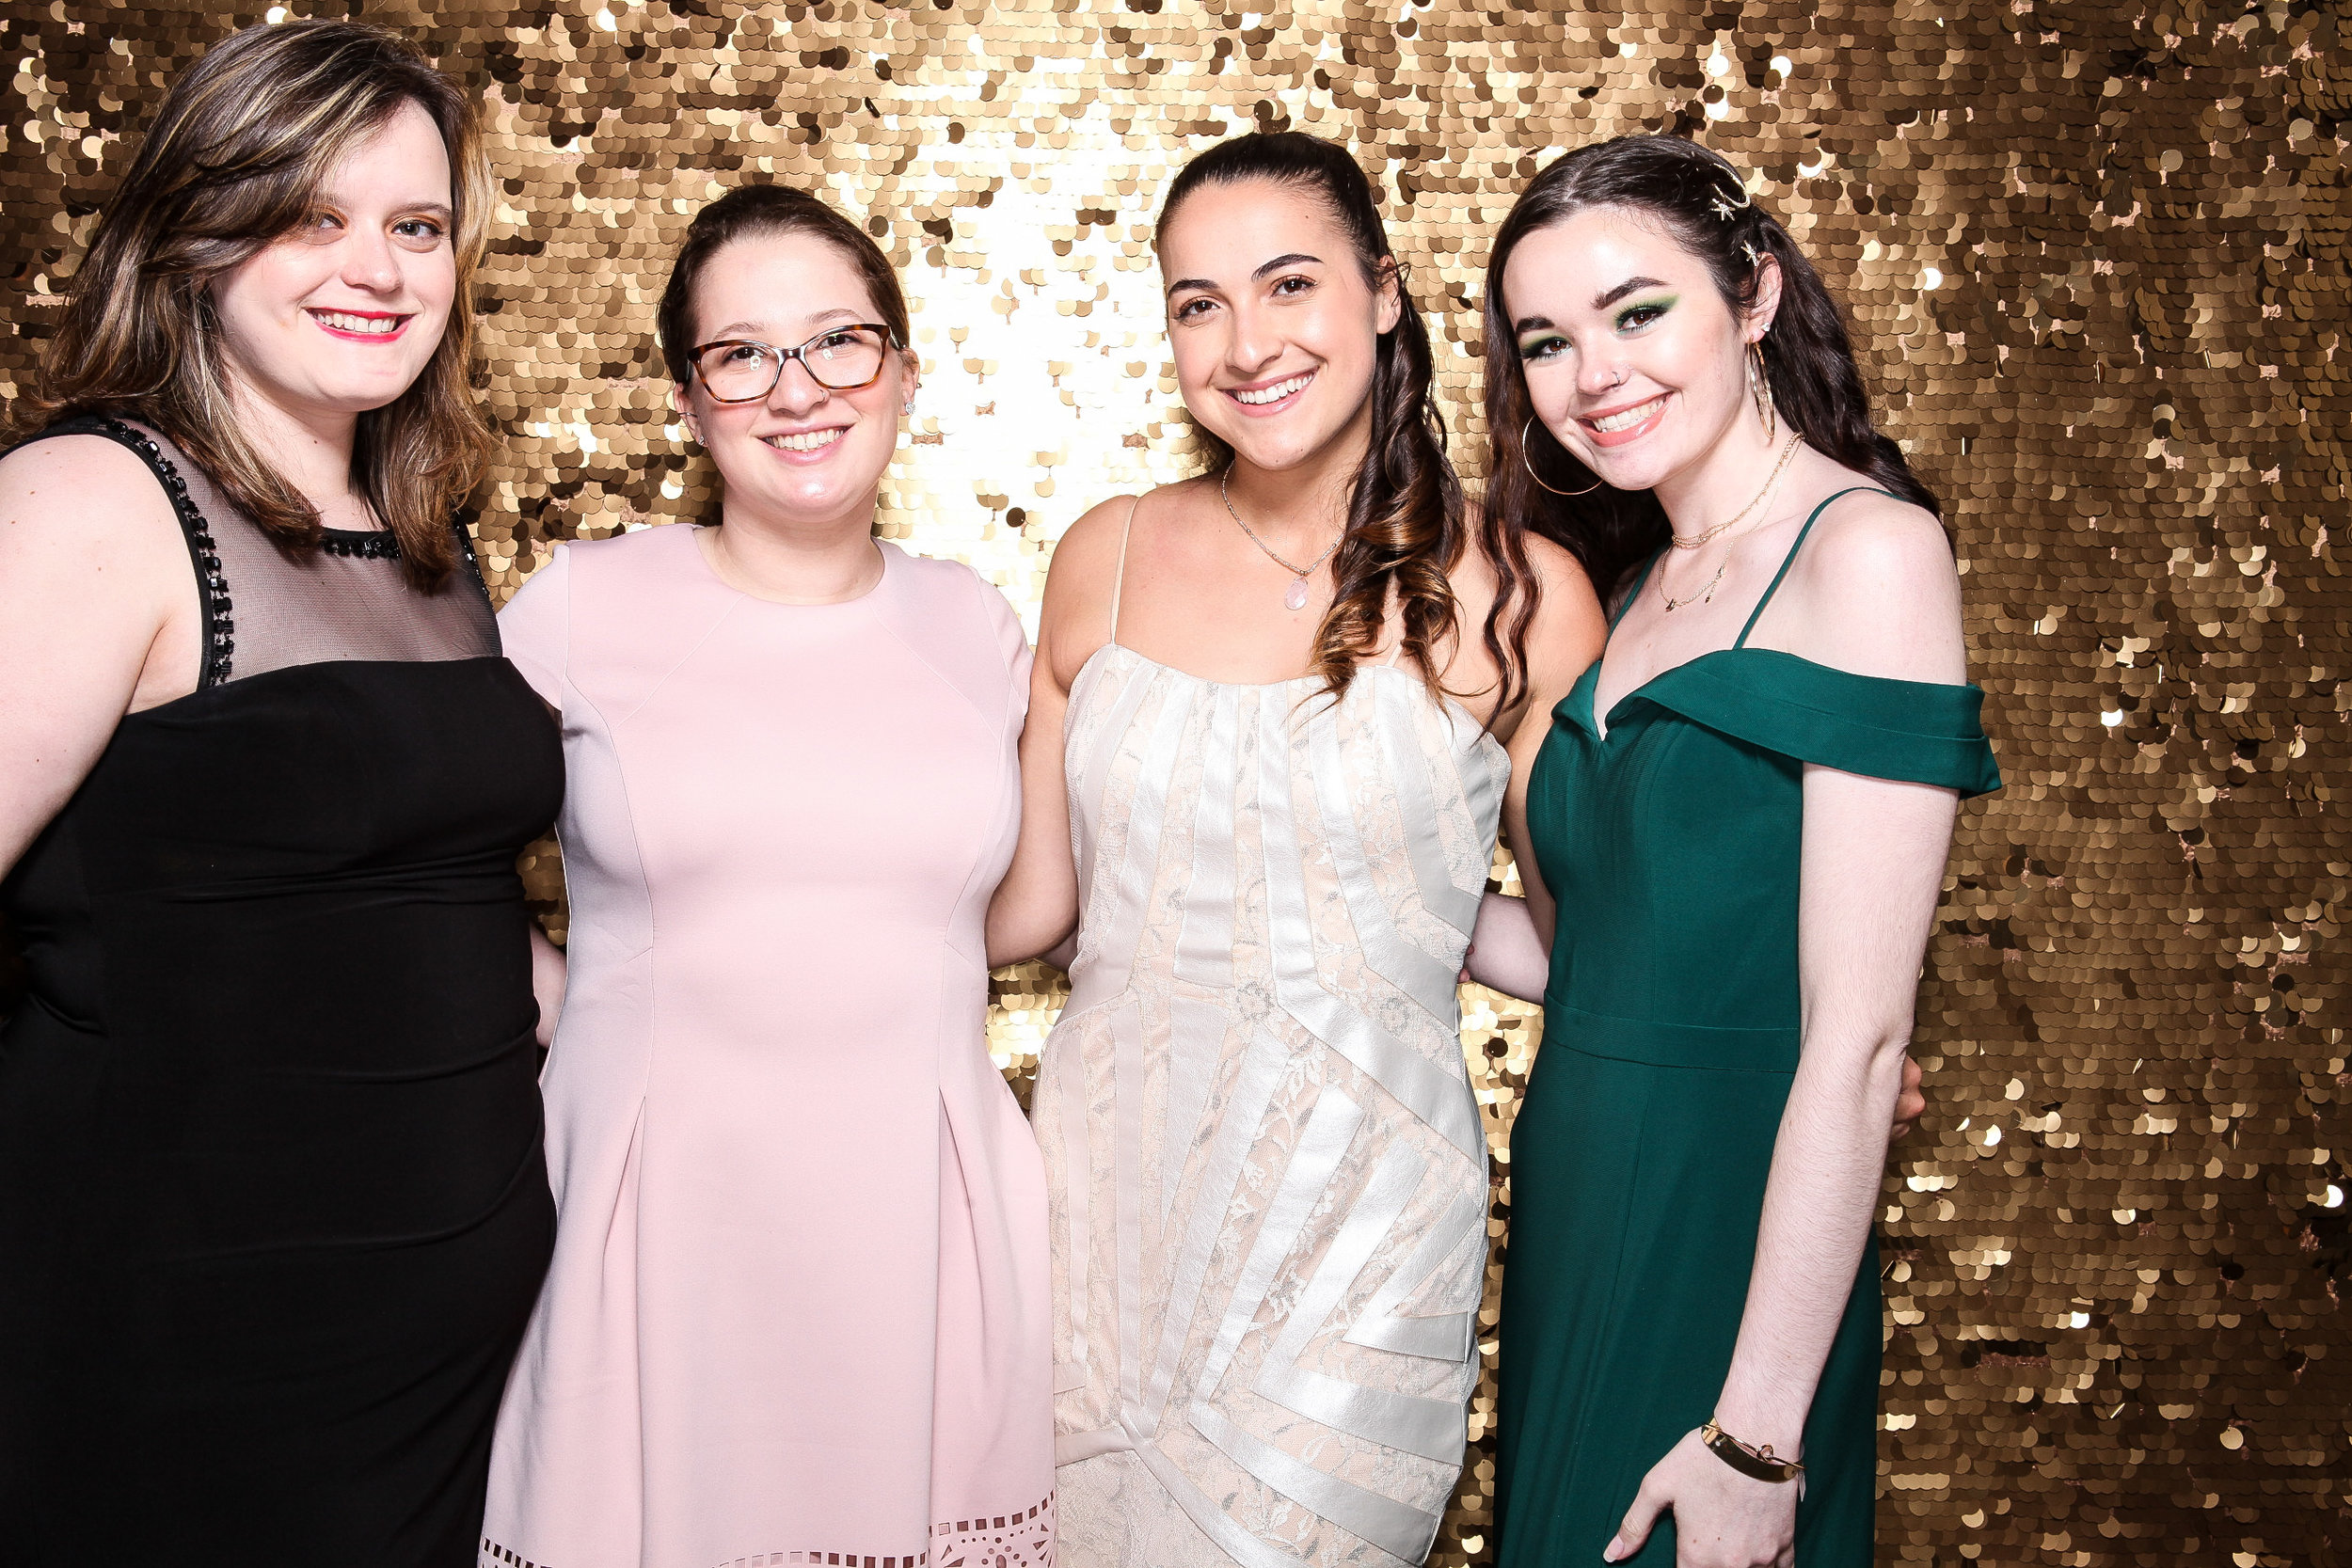 20190503_Adelphi_Senior_Formal-018.jpg